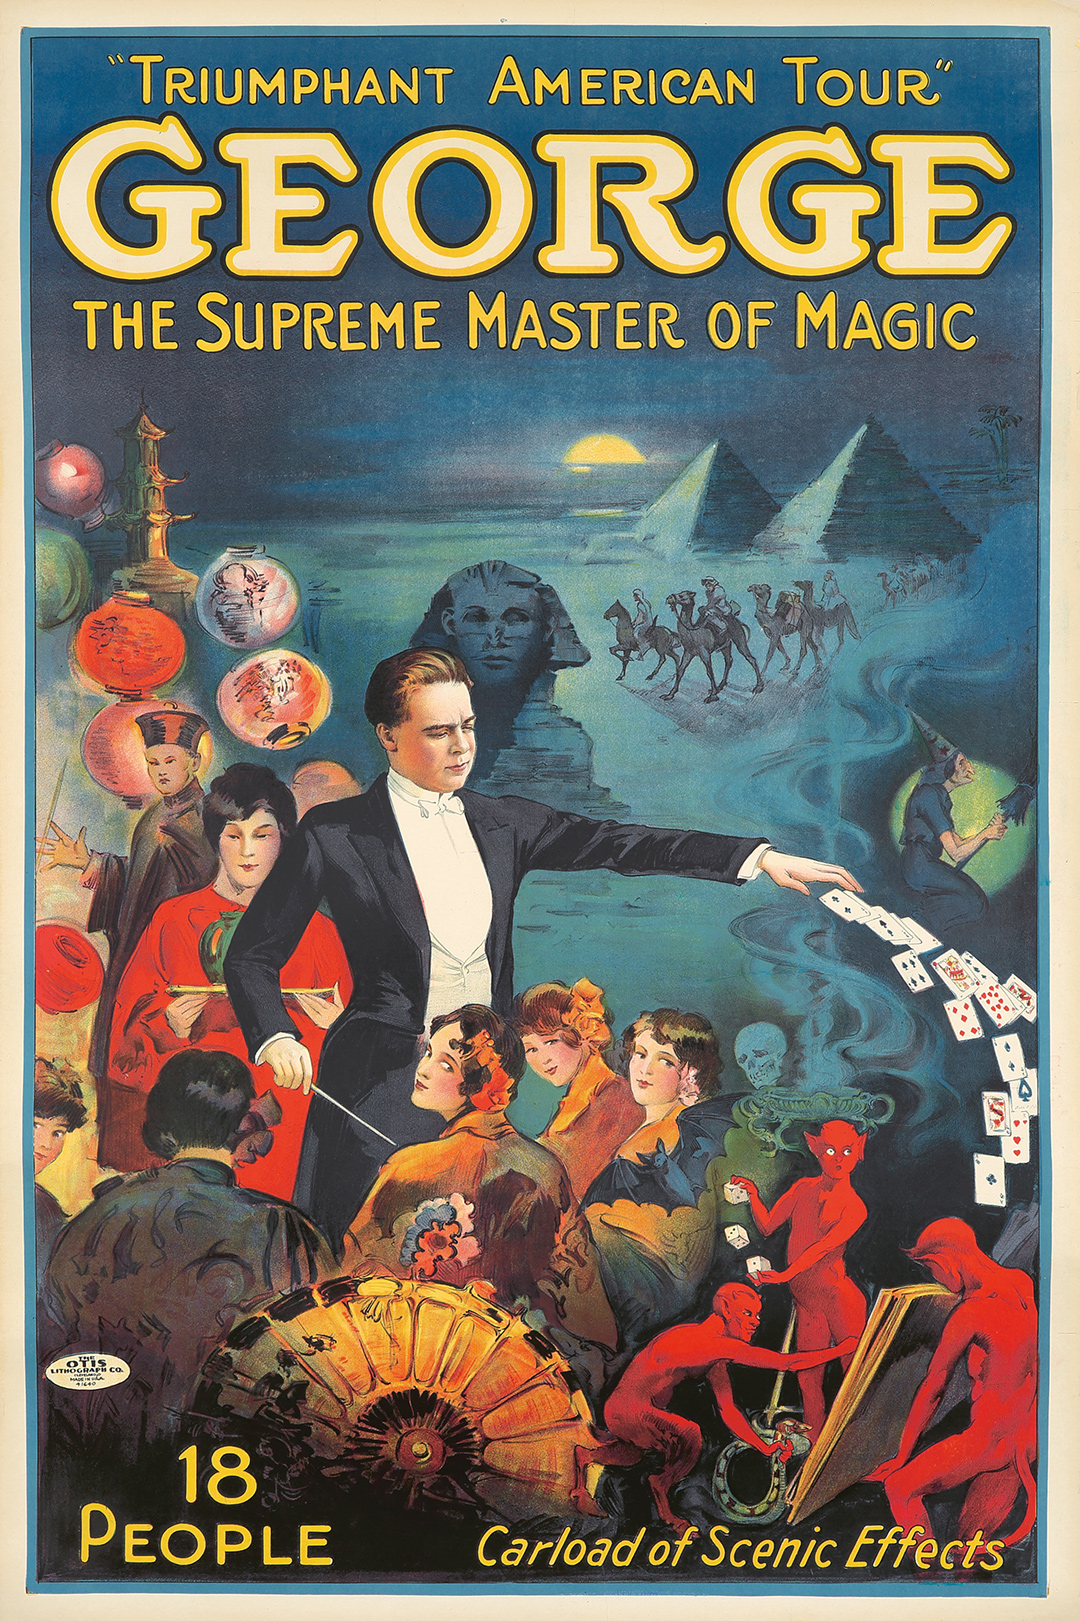 112. George / The Supreme Master of Magic. ca. 1929.